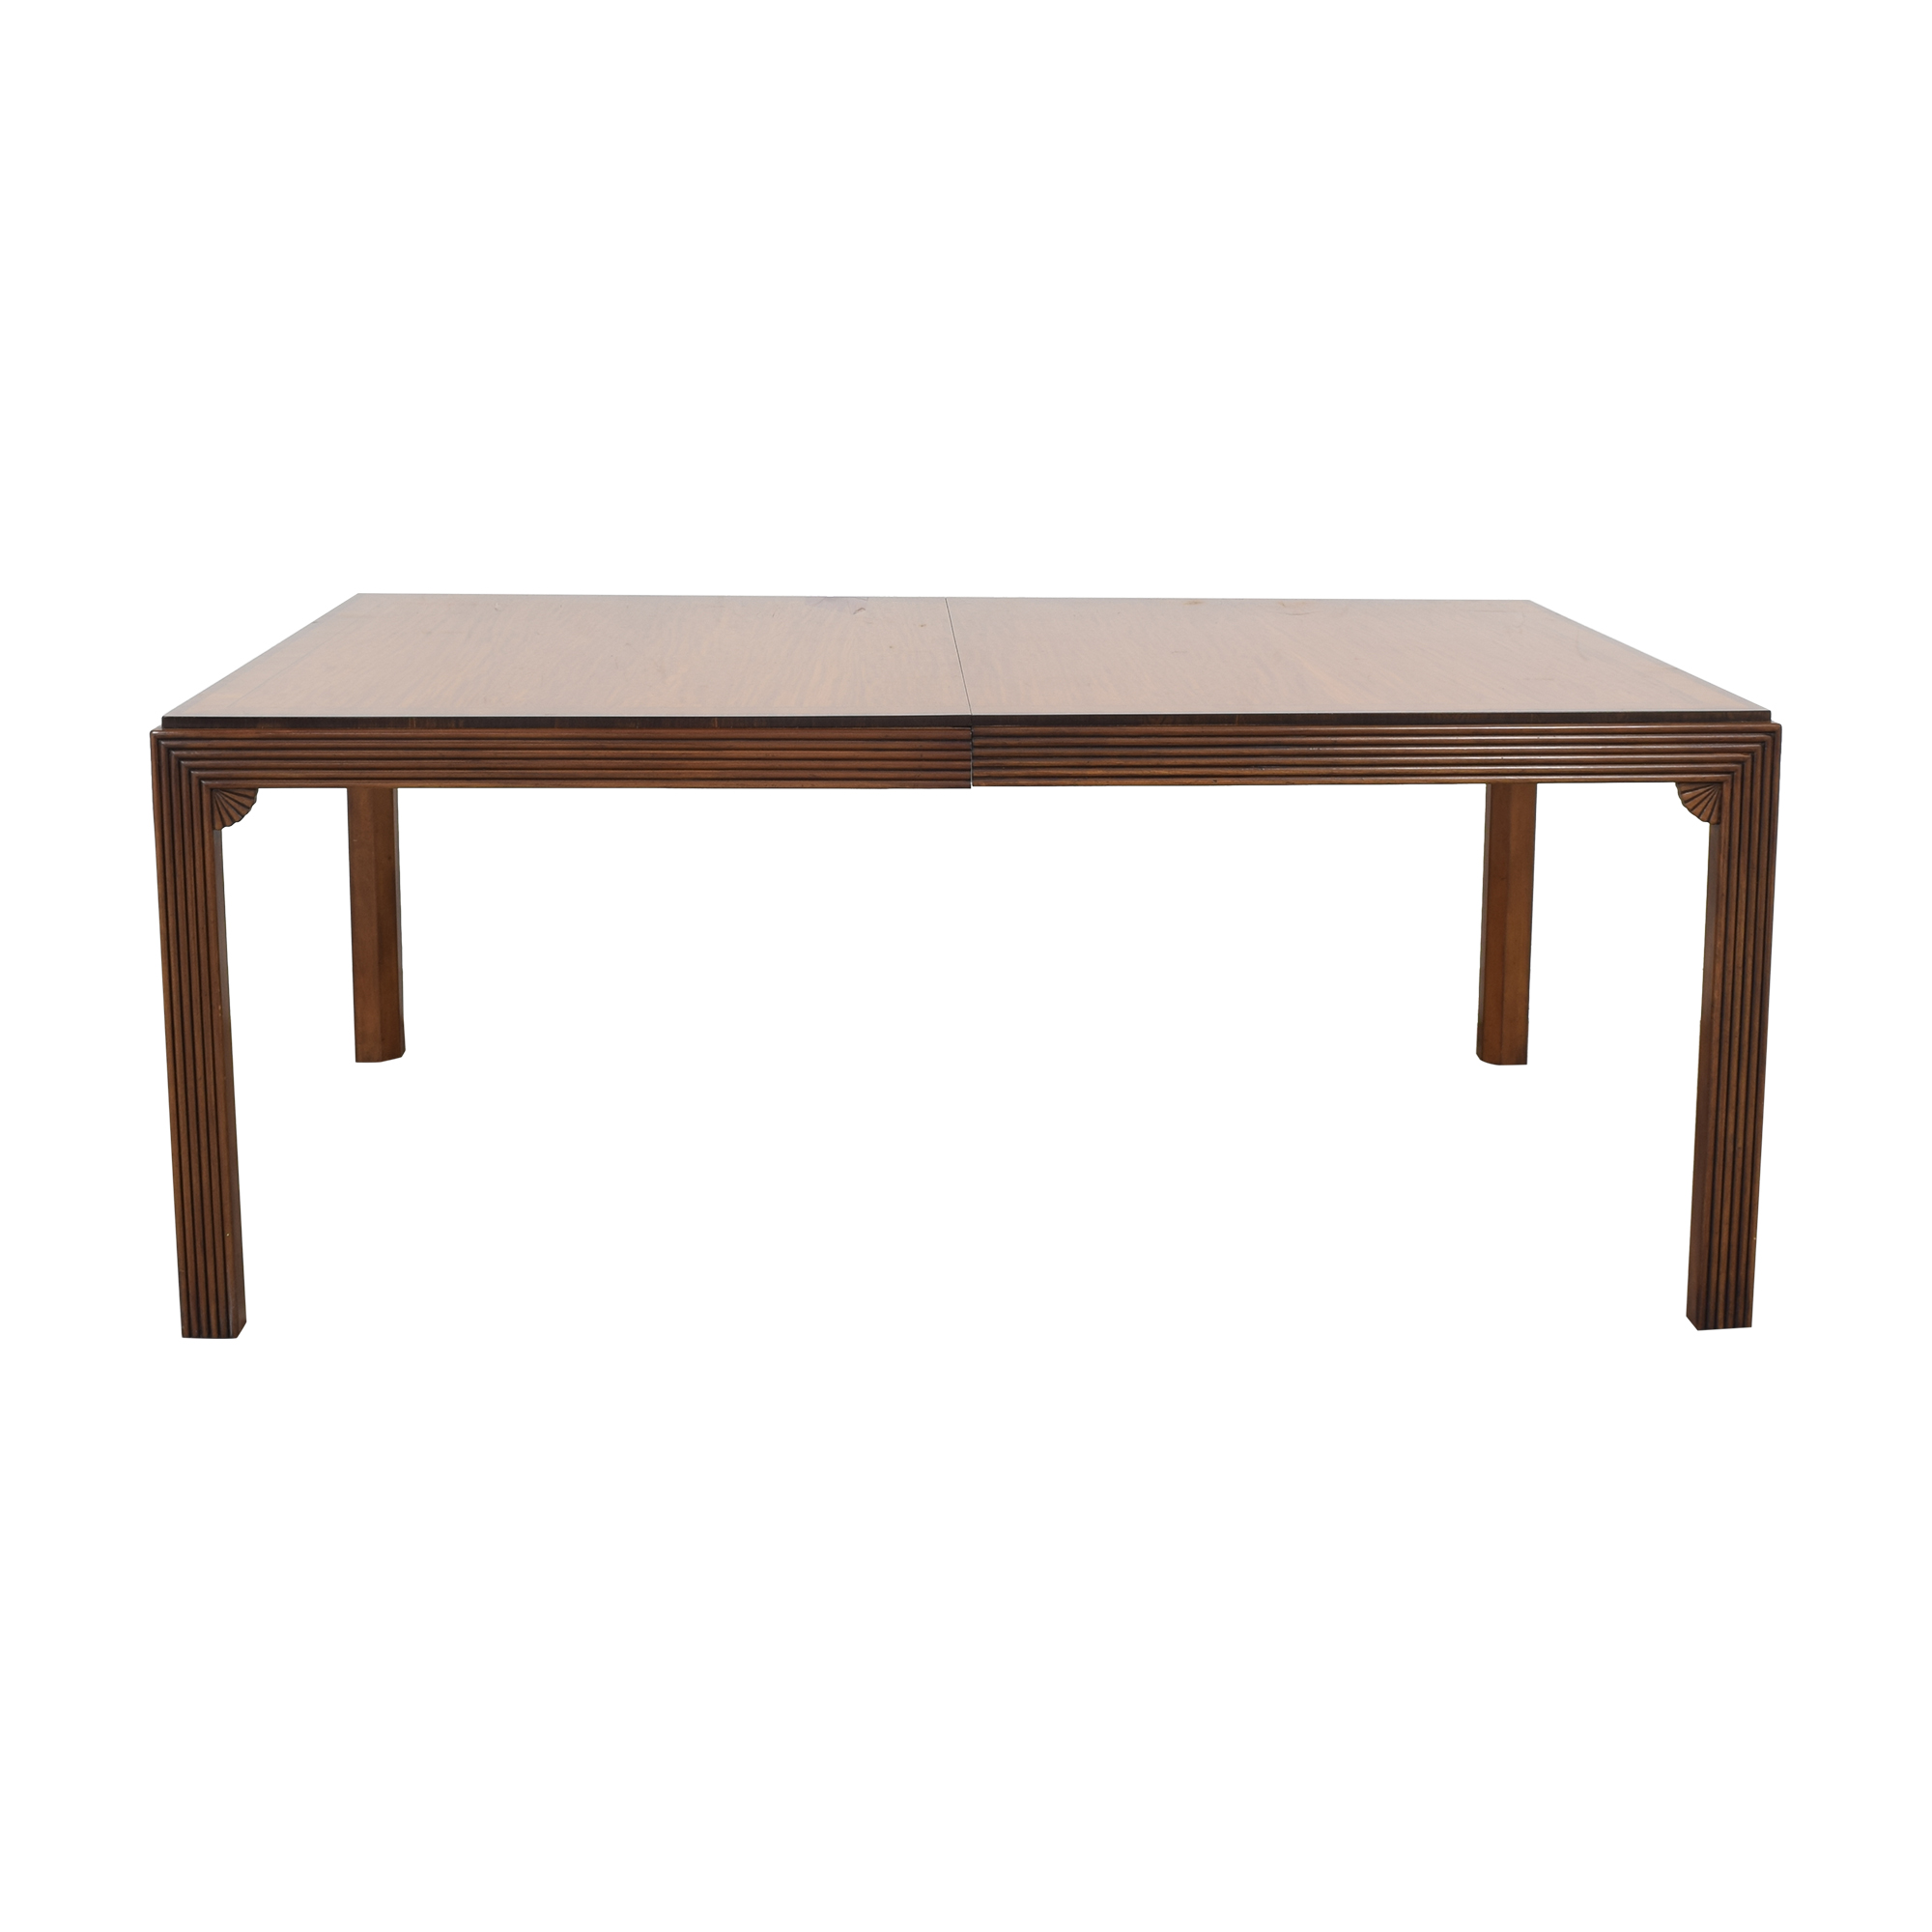 Heritage Heritage Extending Dining Table